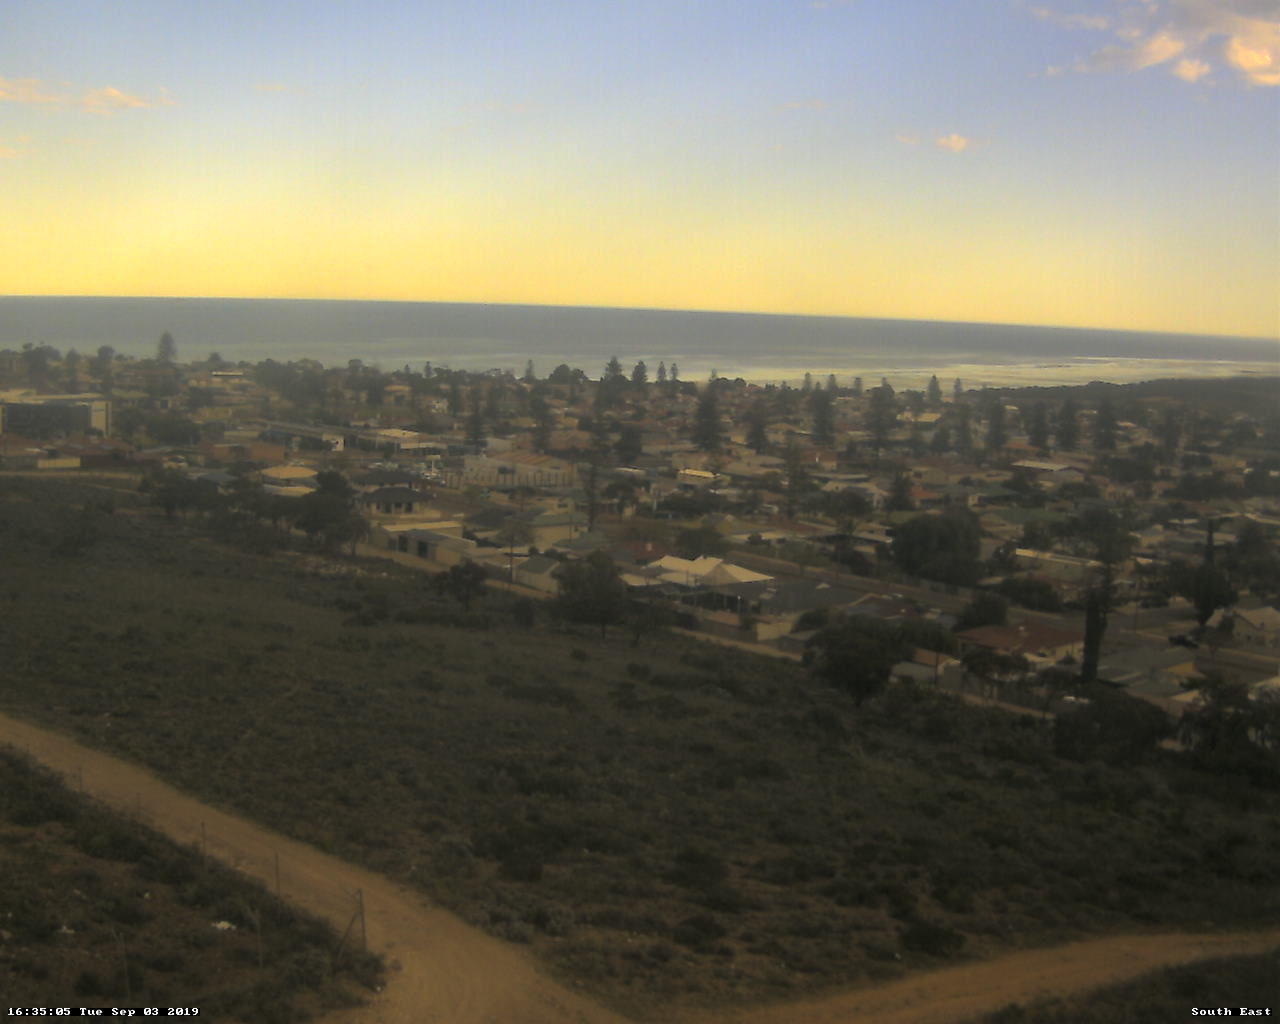 View from Whyalla Council's Communications Tower